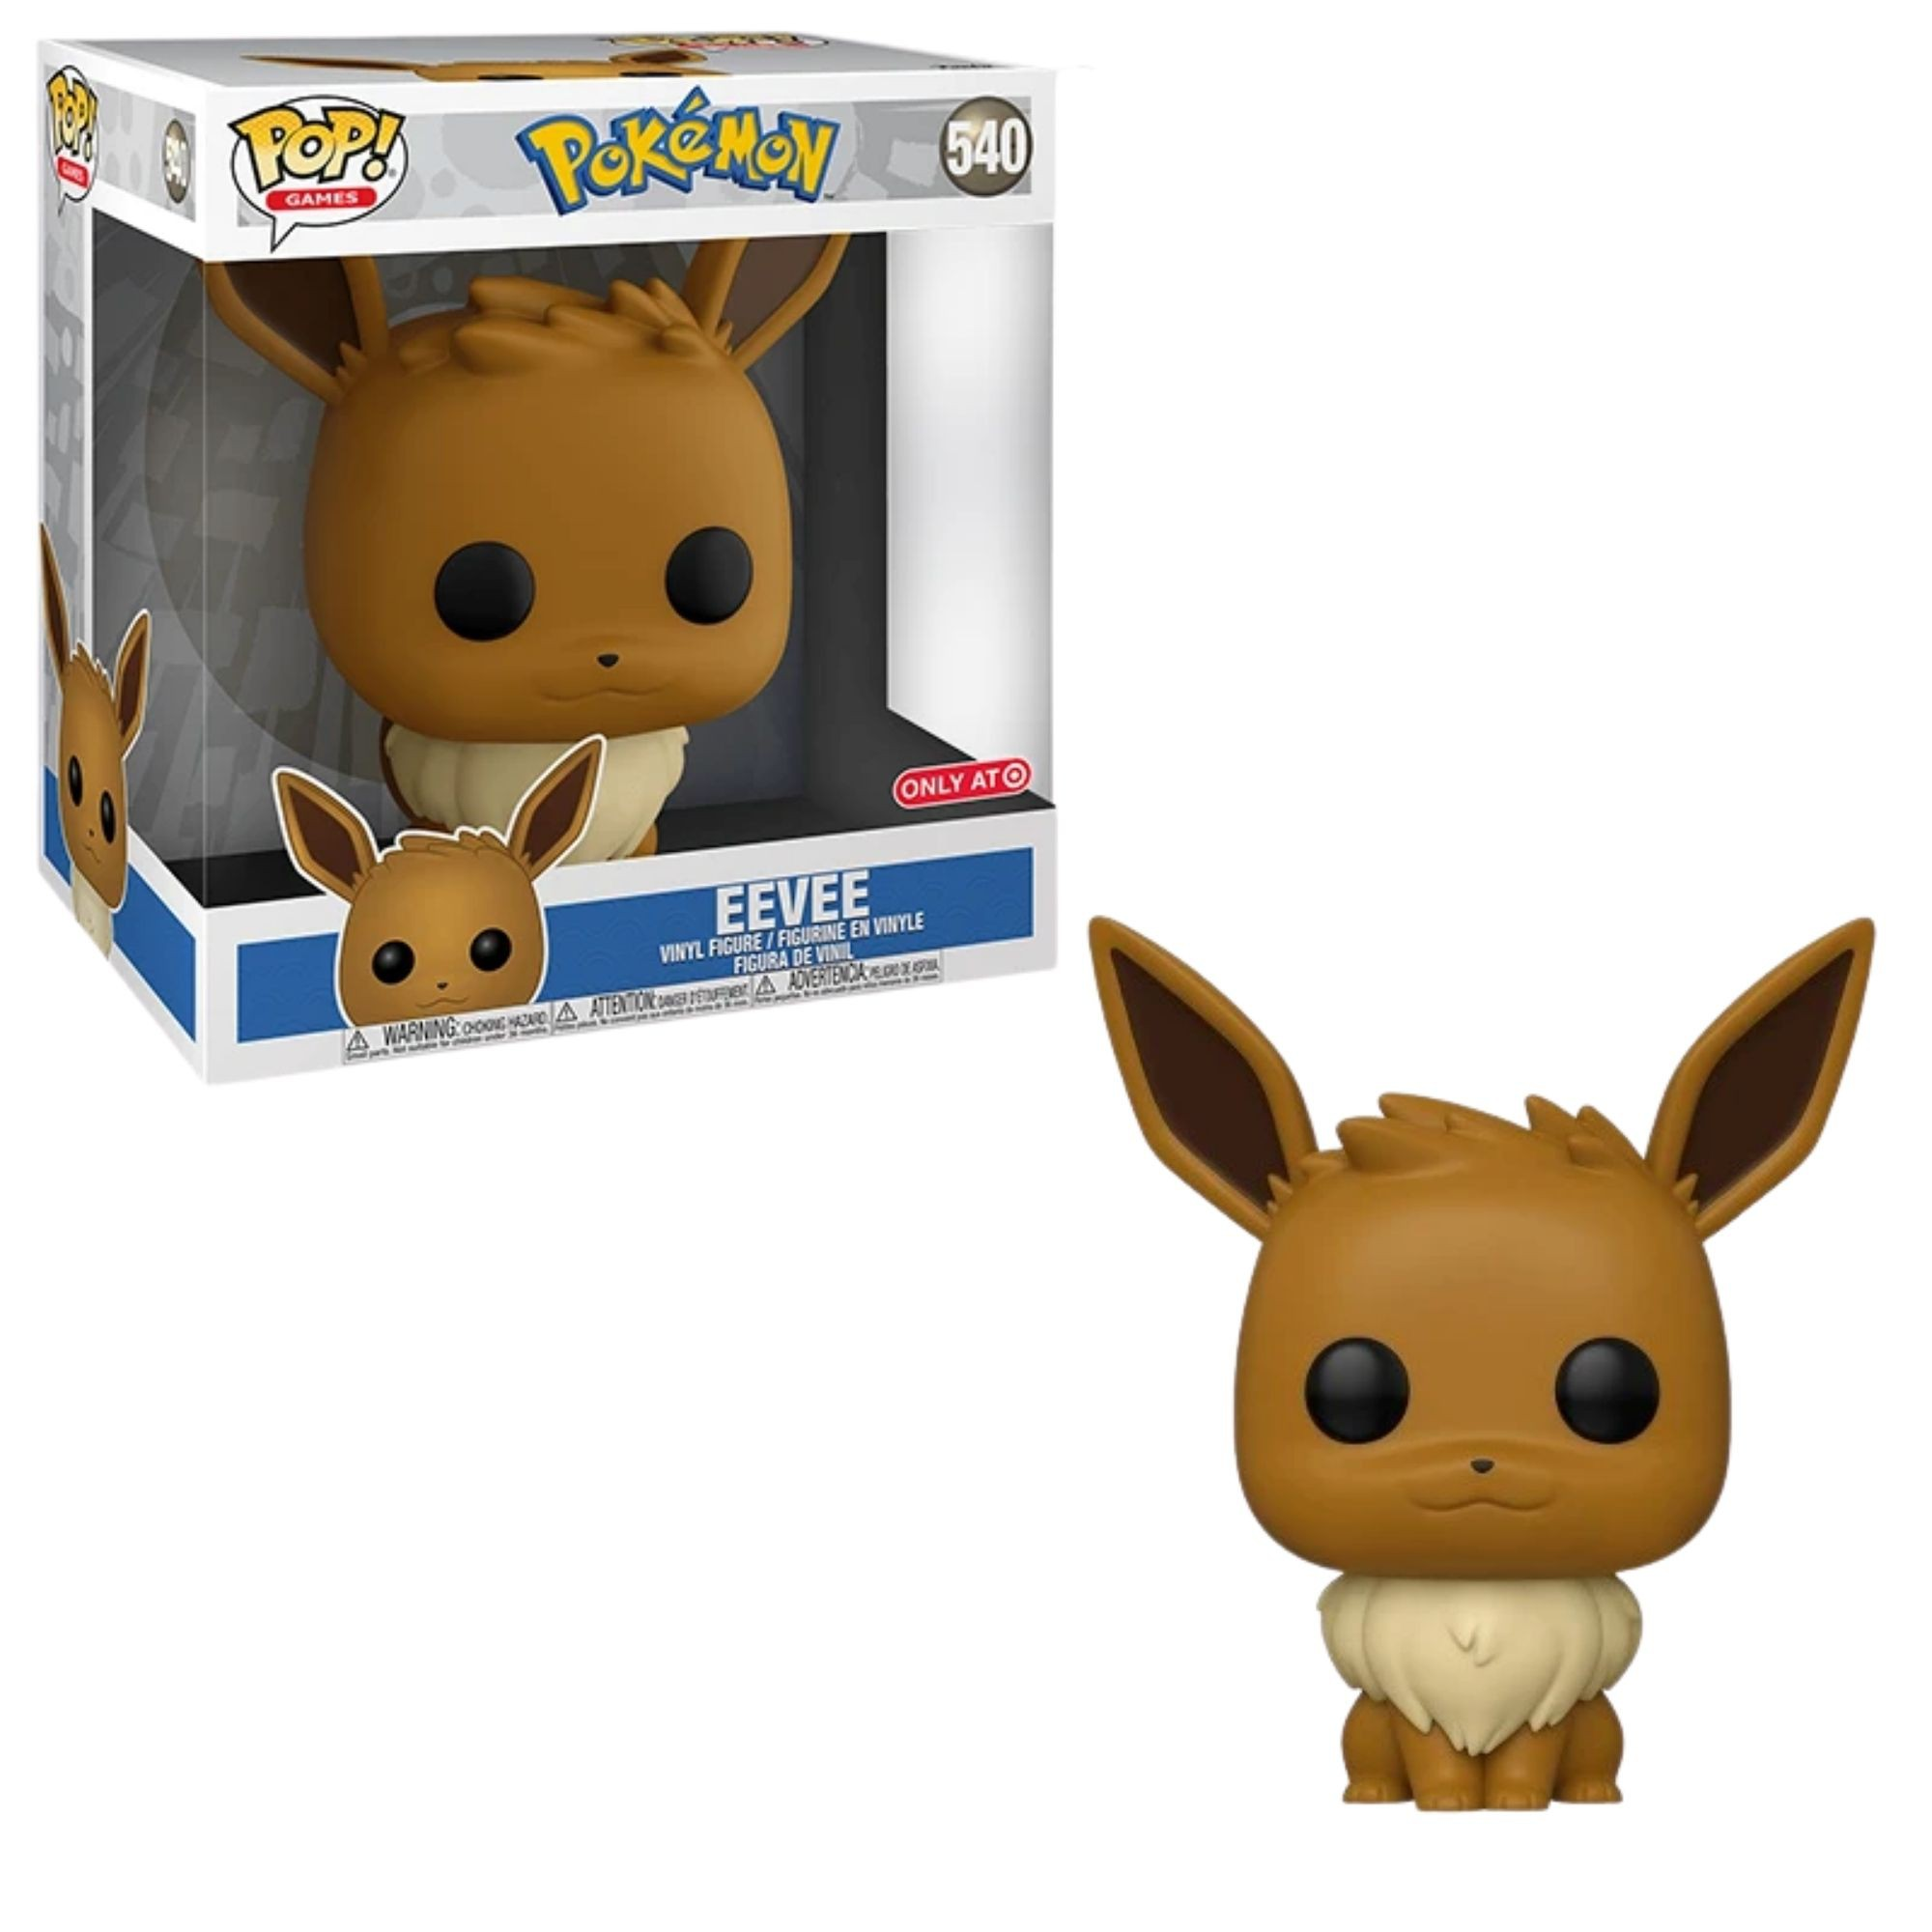 Boneco Funko Pop Pokemon Eevee Exclusivo Target  27 cm #540  - Game Land Brinquedos